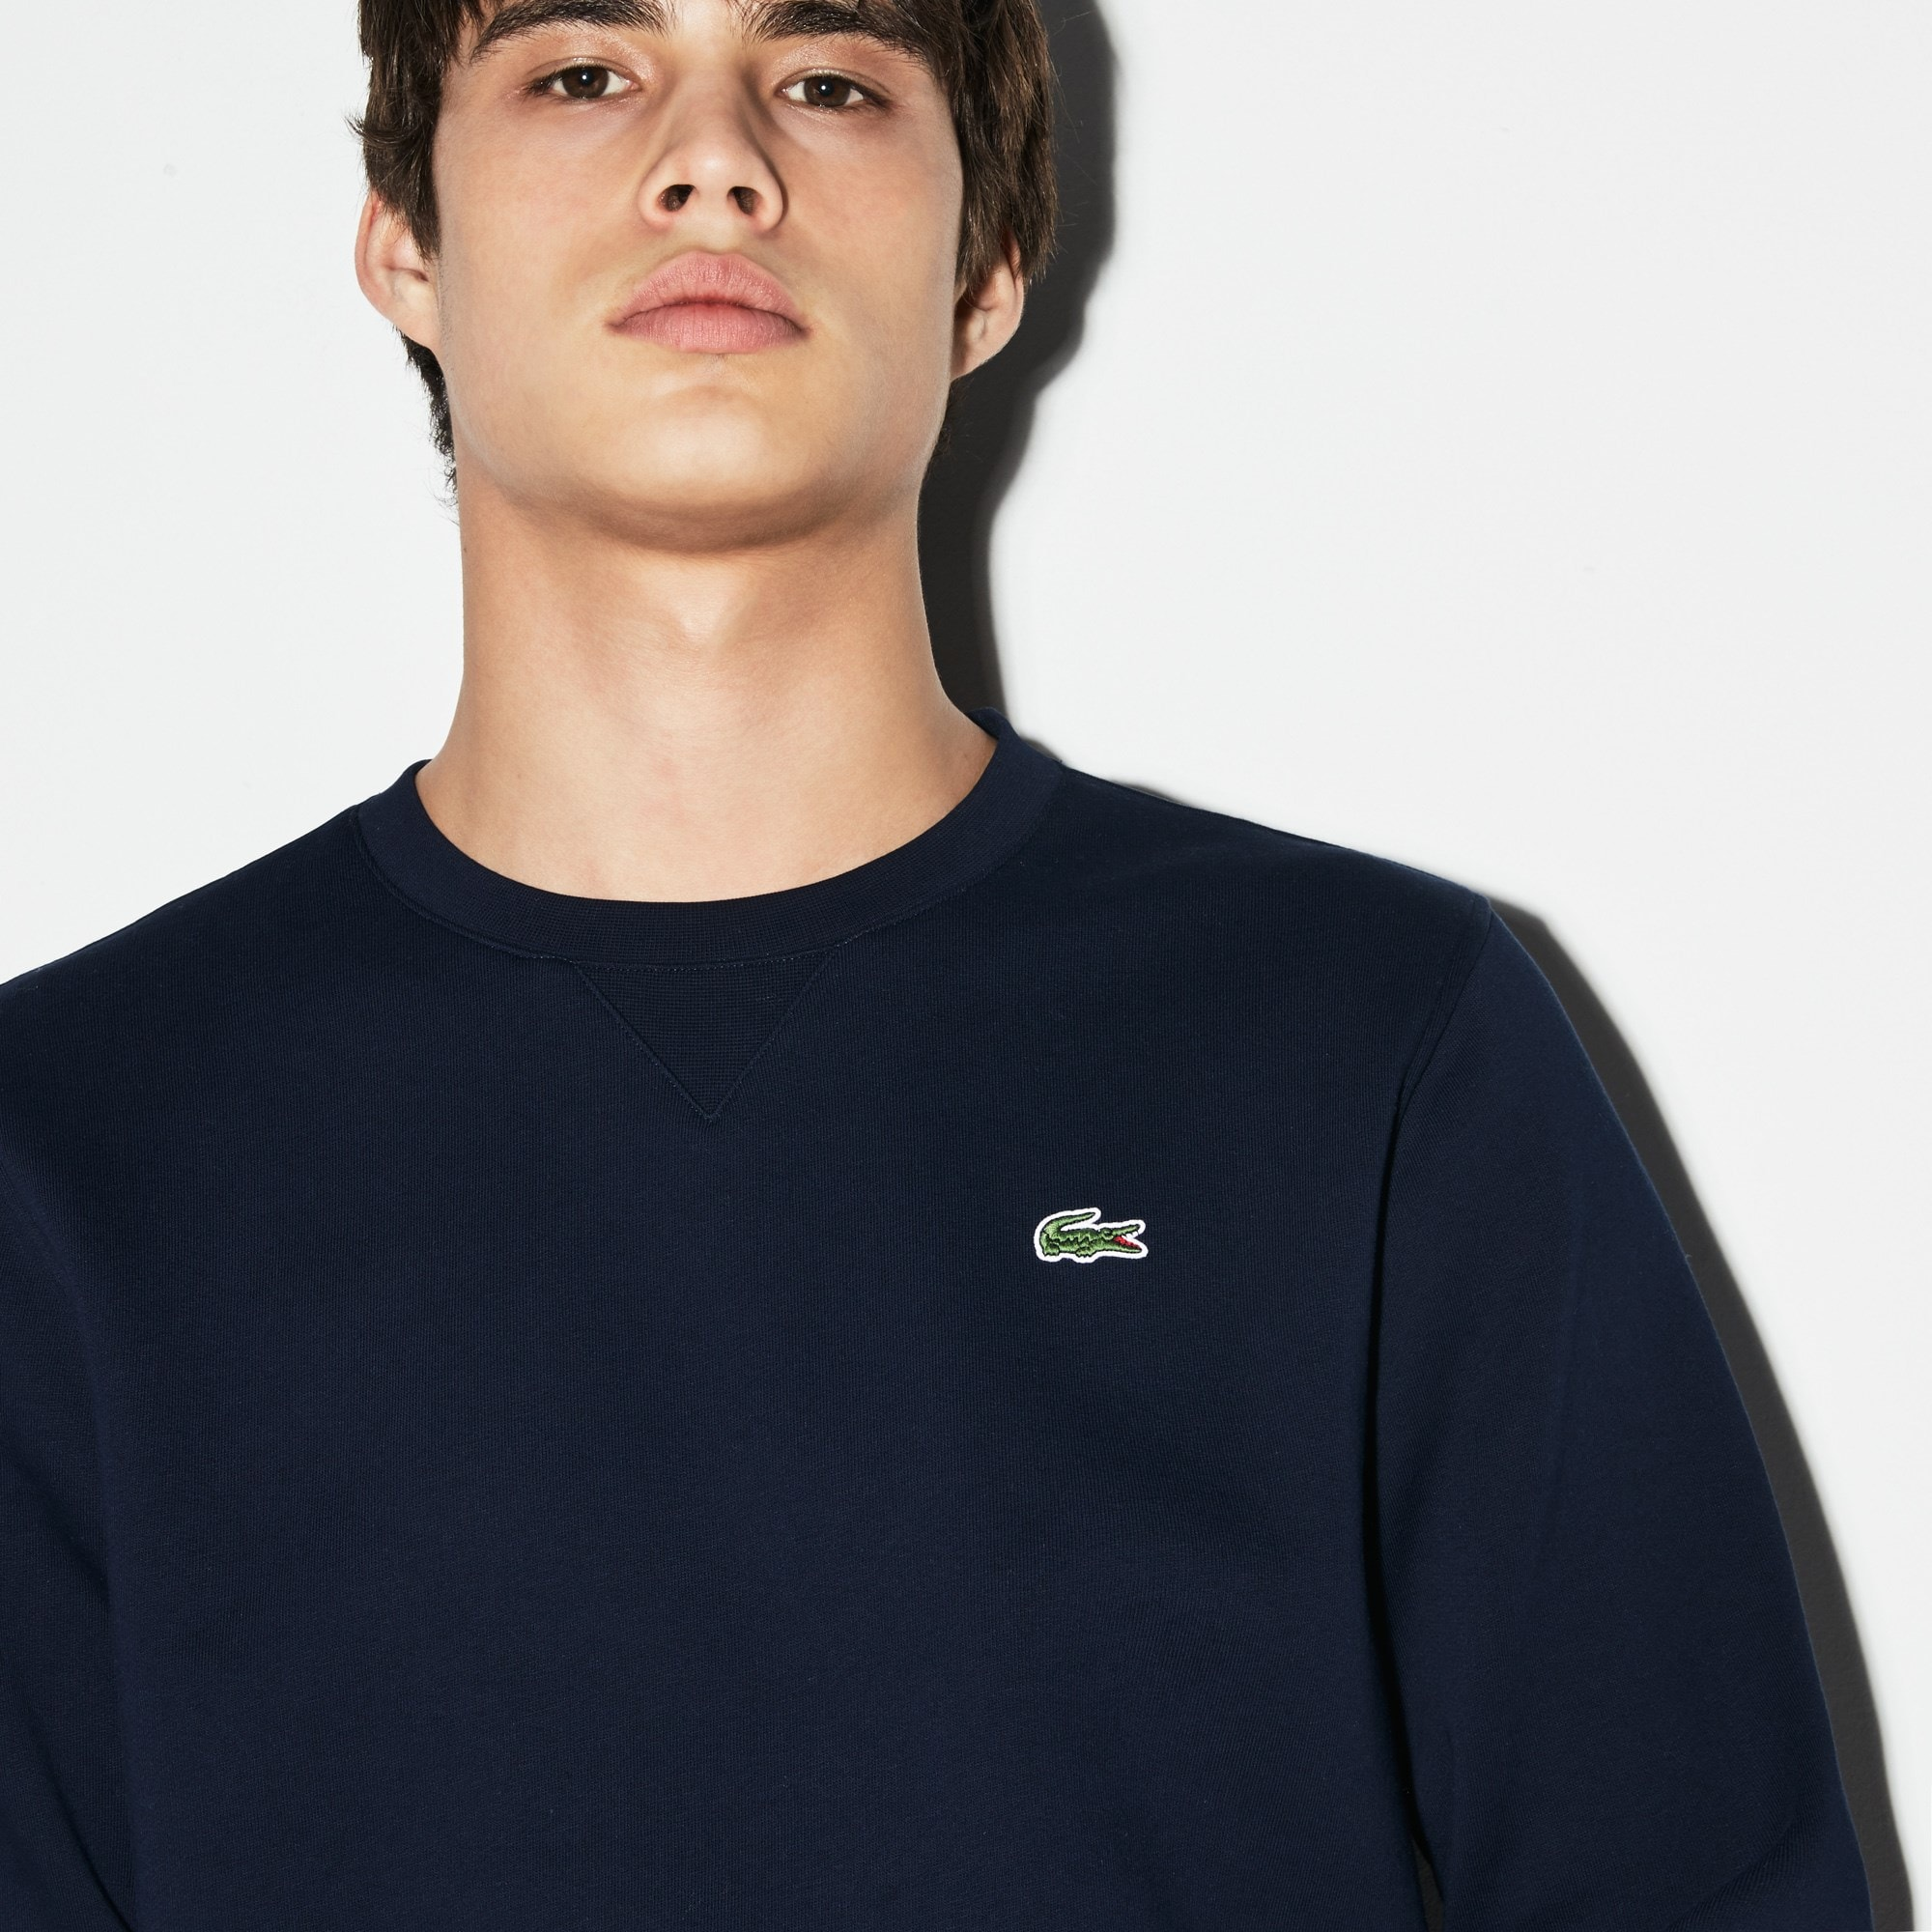 Men's SPORT Crew Neck Sweatshirt